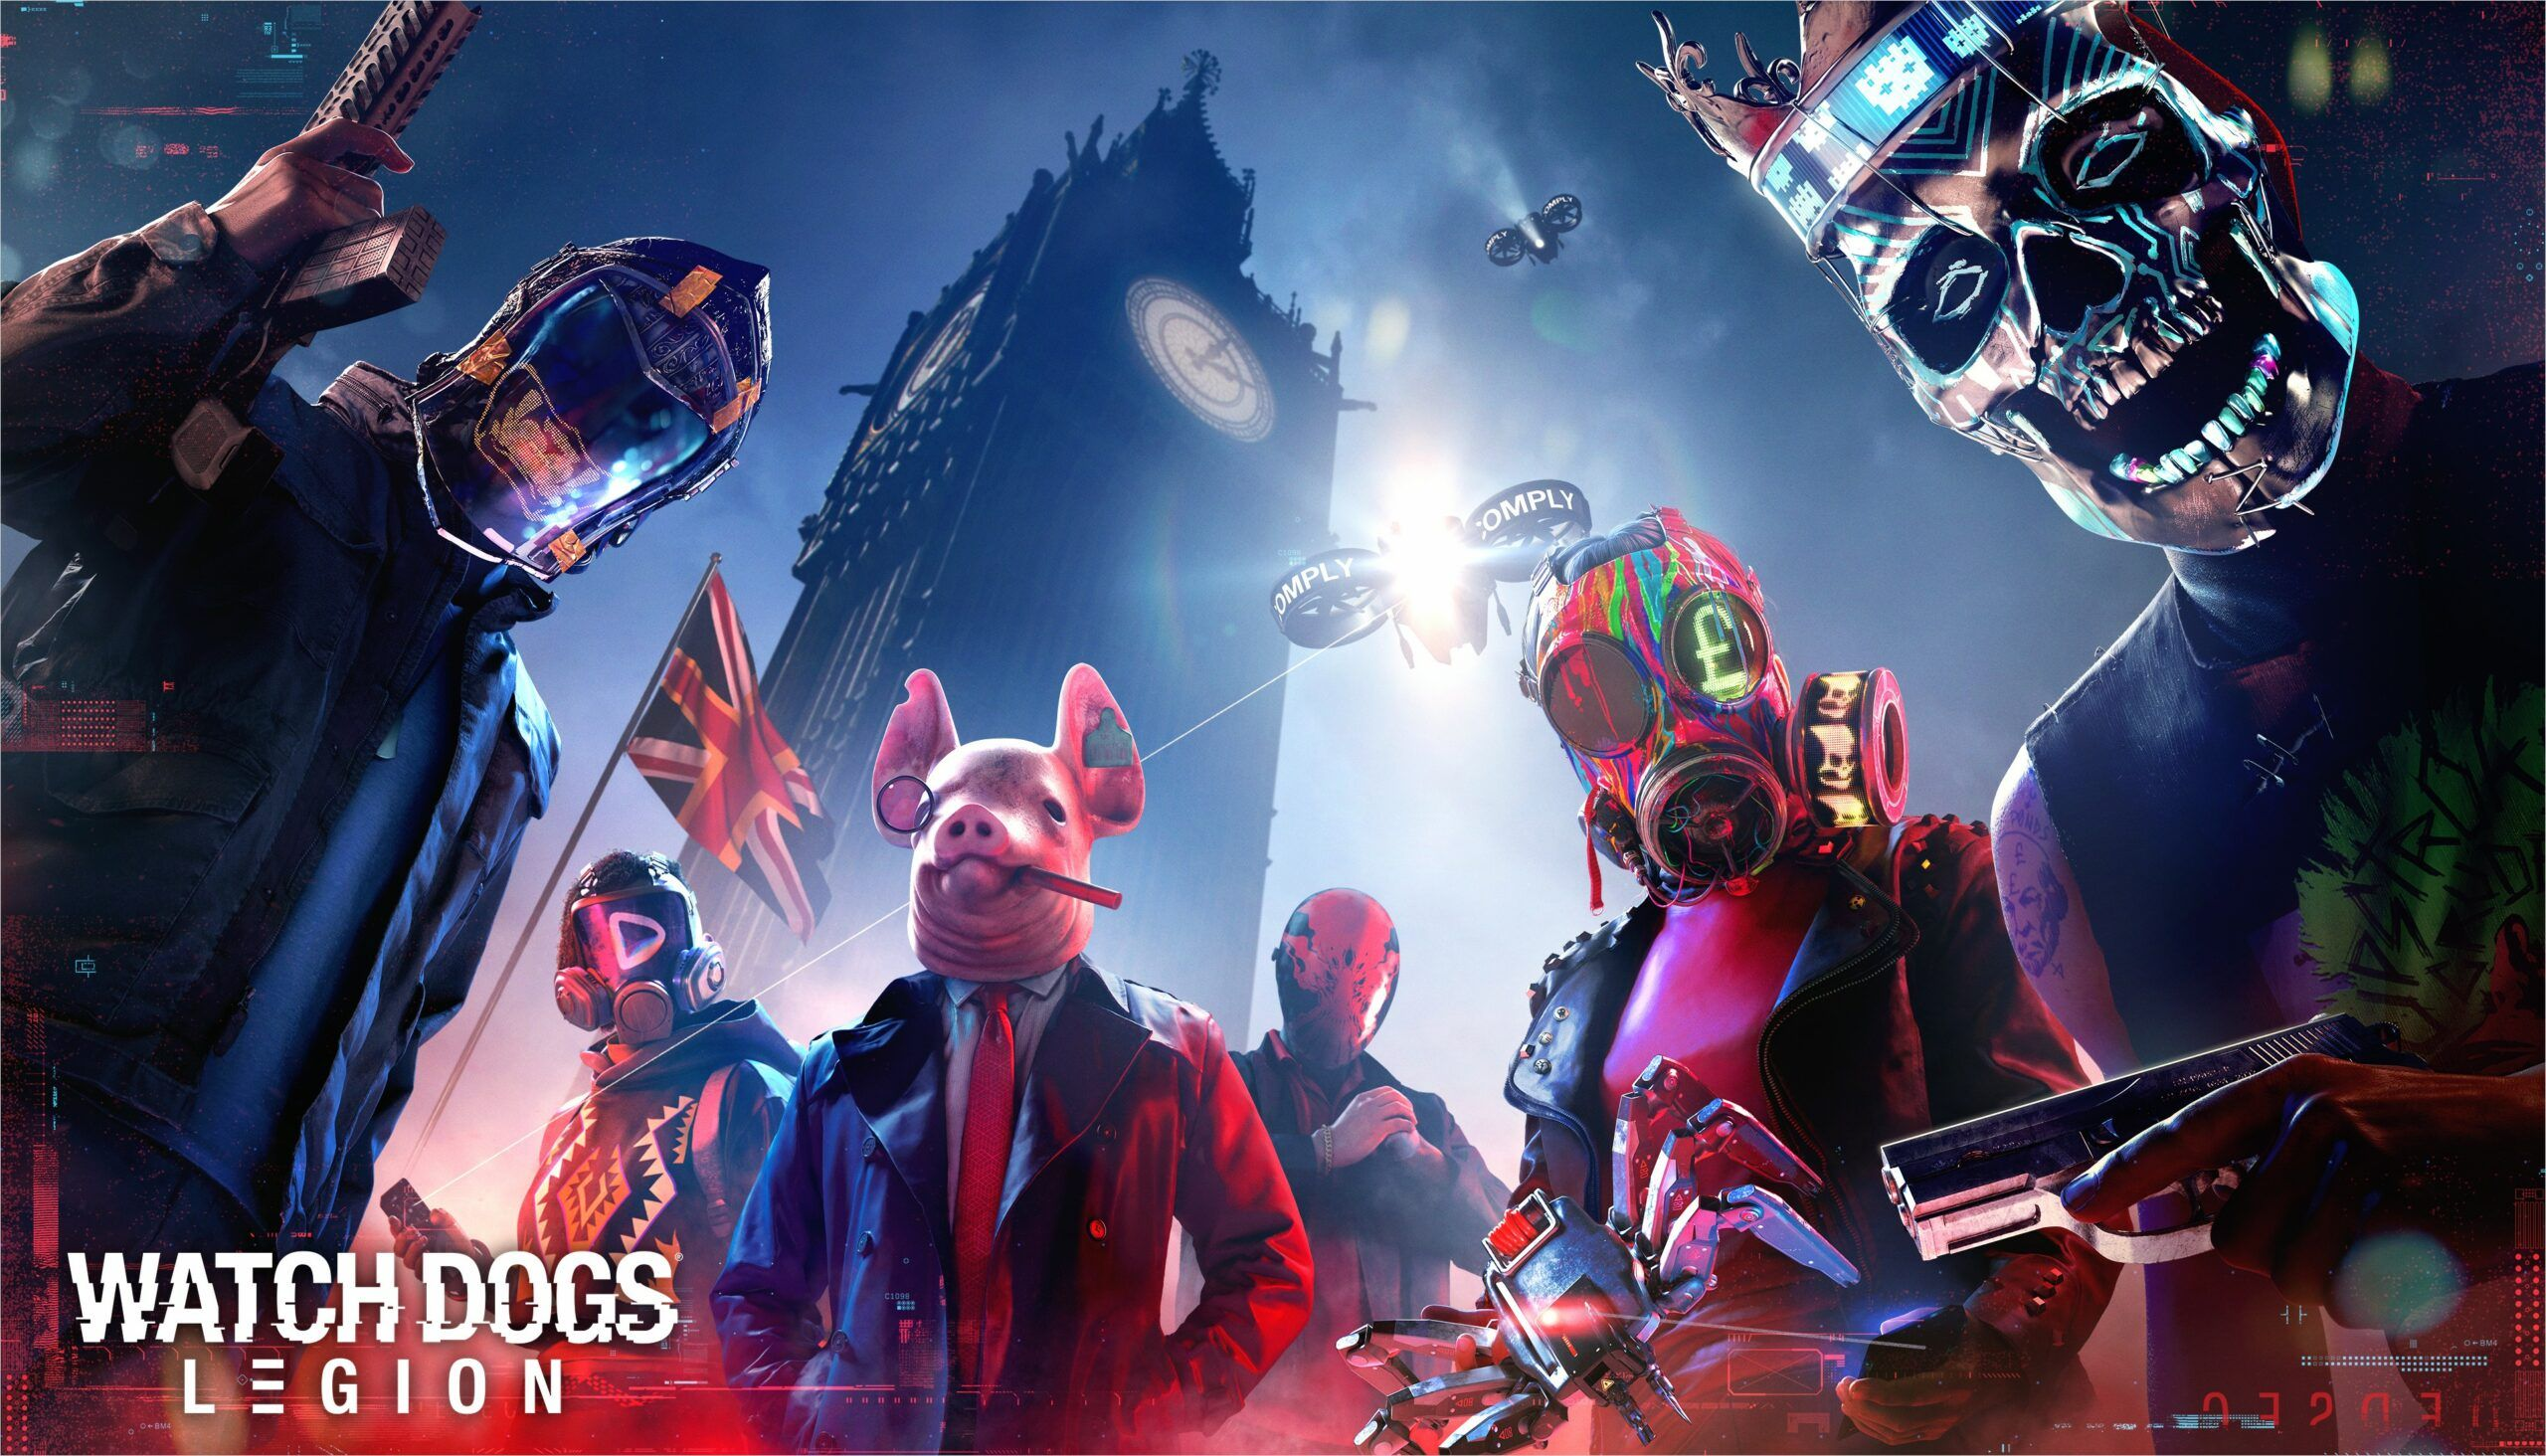 4k Wallpaper Watch Dogs In 2020 With Images Watch Dogs Legion